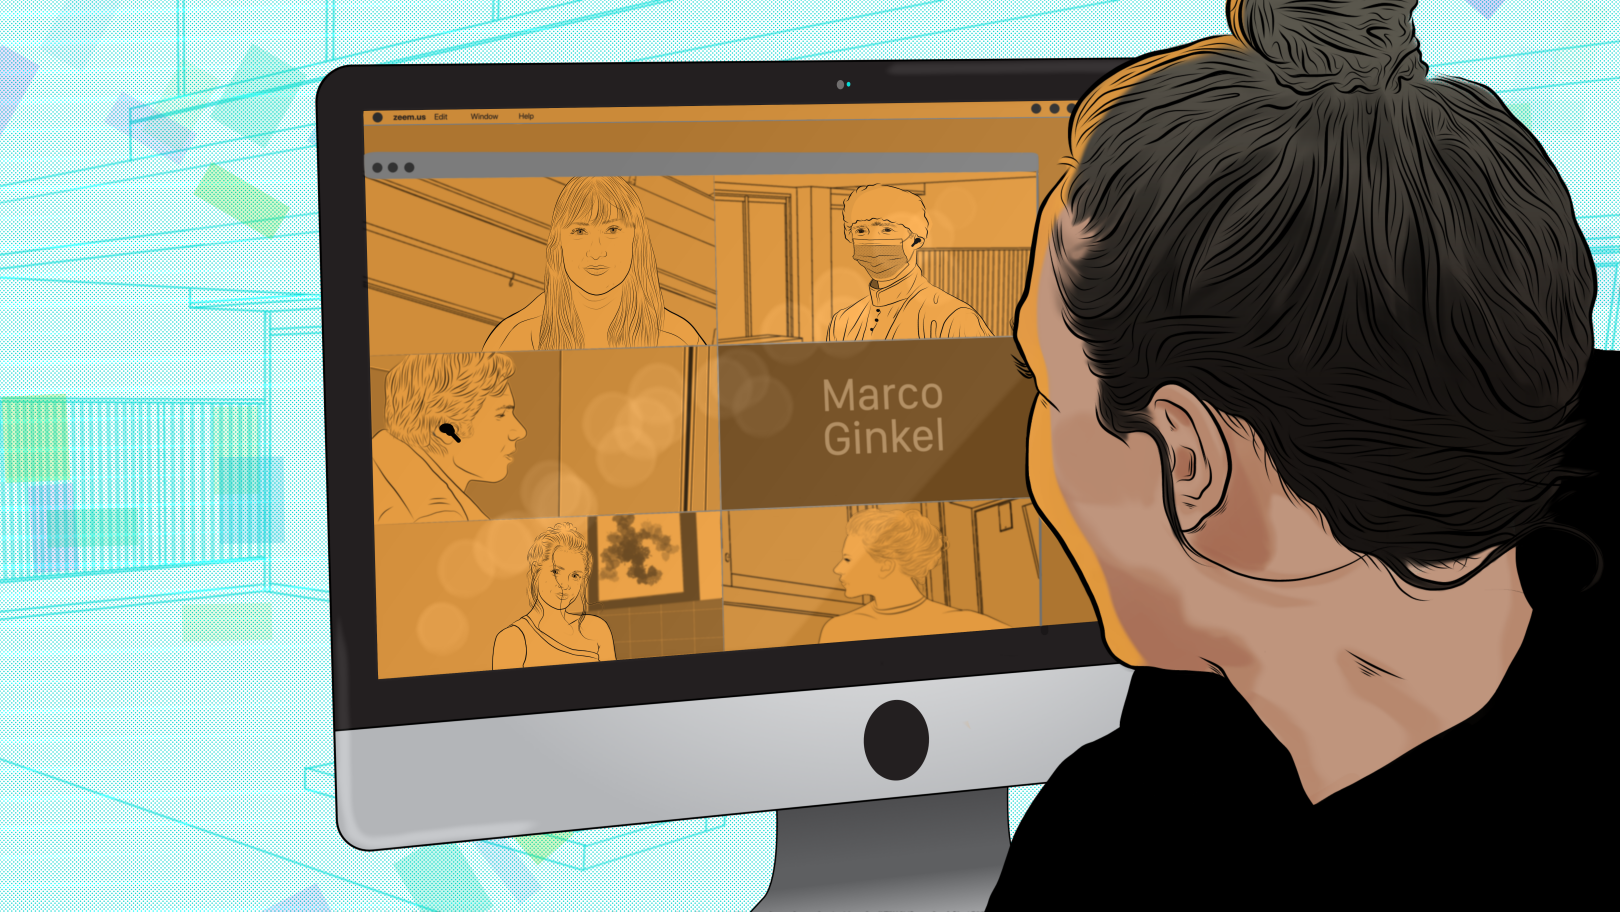 A woman looking into her desktop computer while having a video conference with her coworkers. Illustrated by Alonso Guzmán Barone.